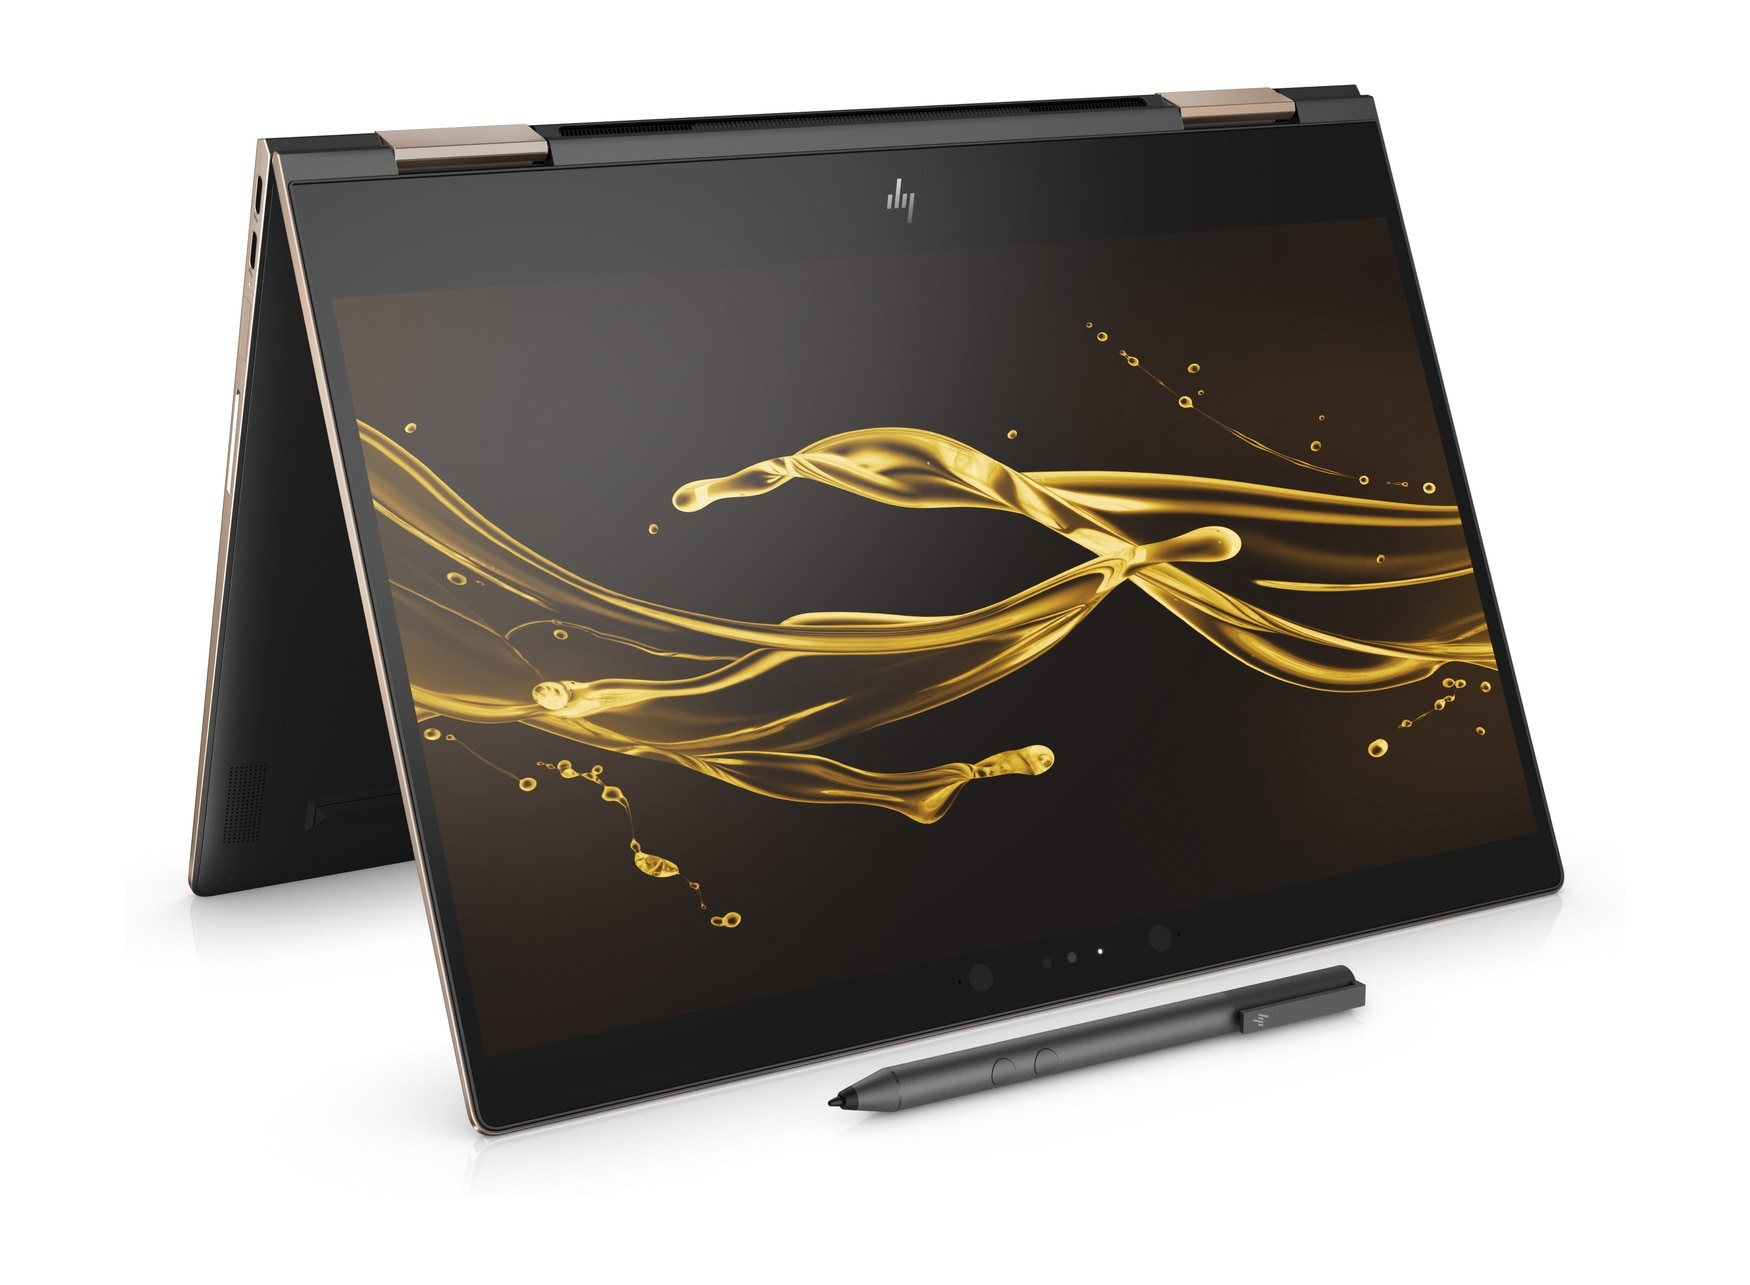 Image result for hp spectre